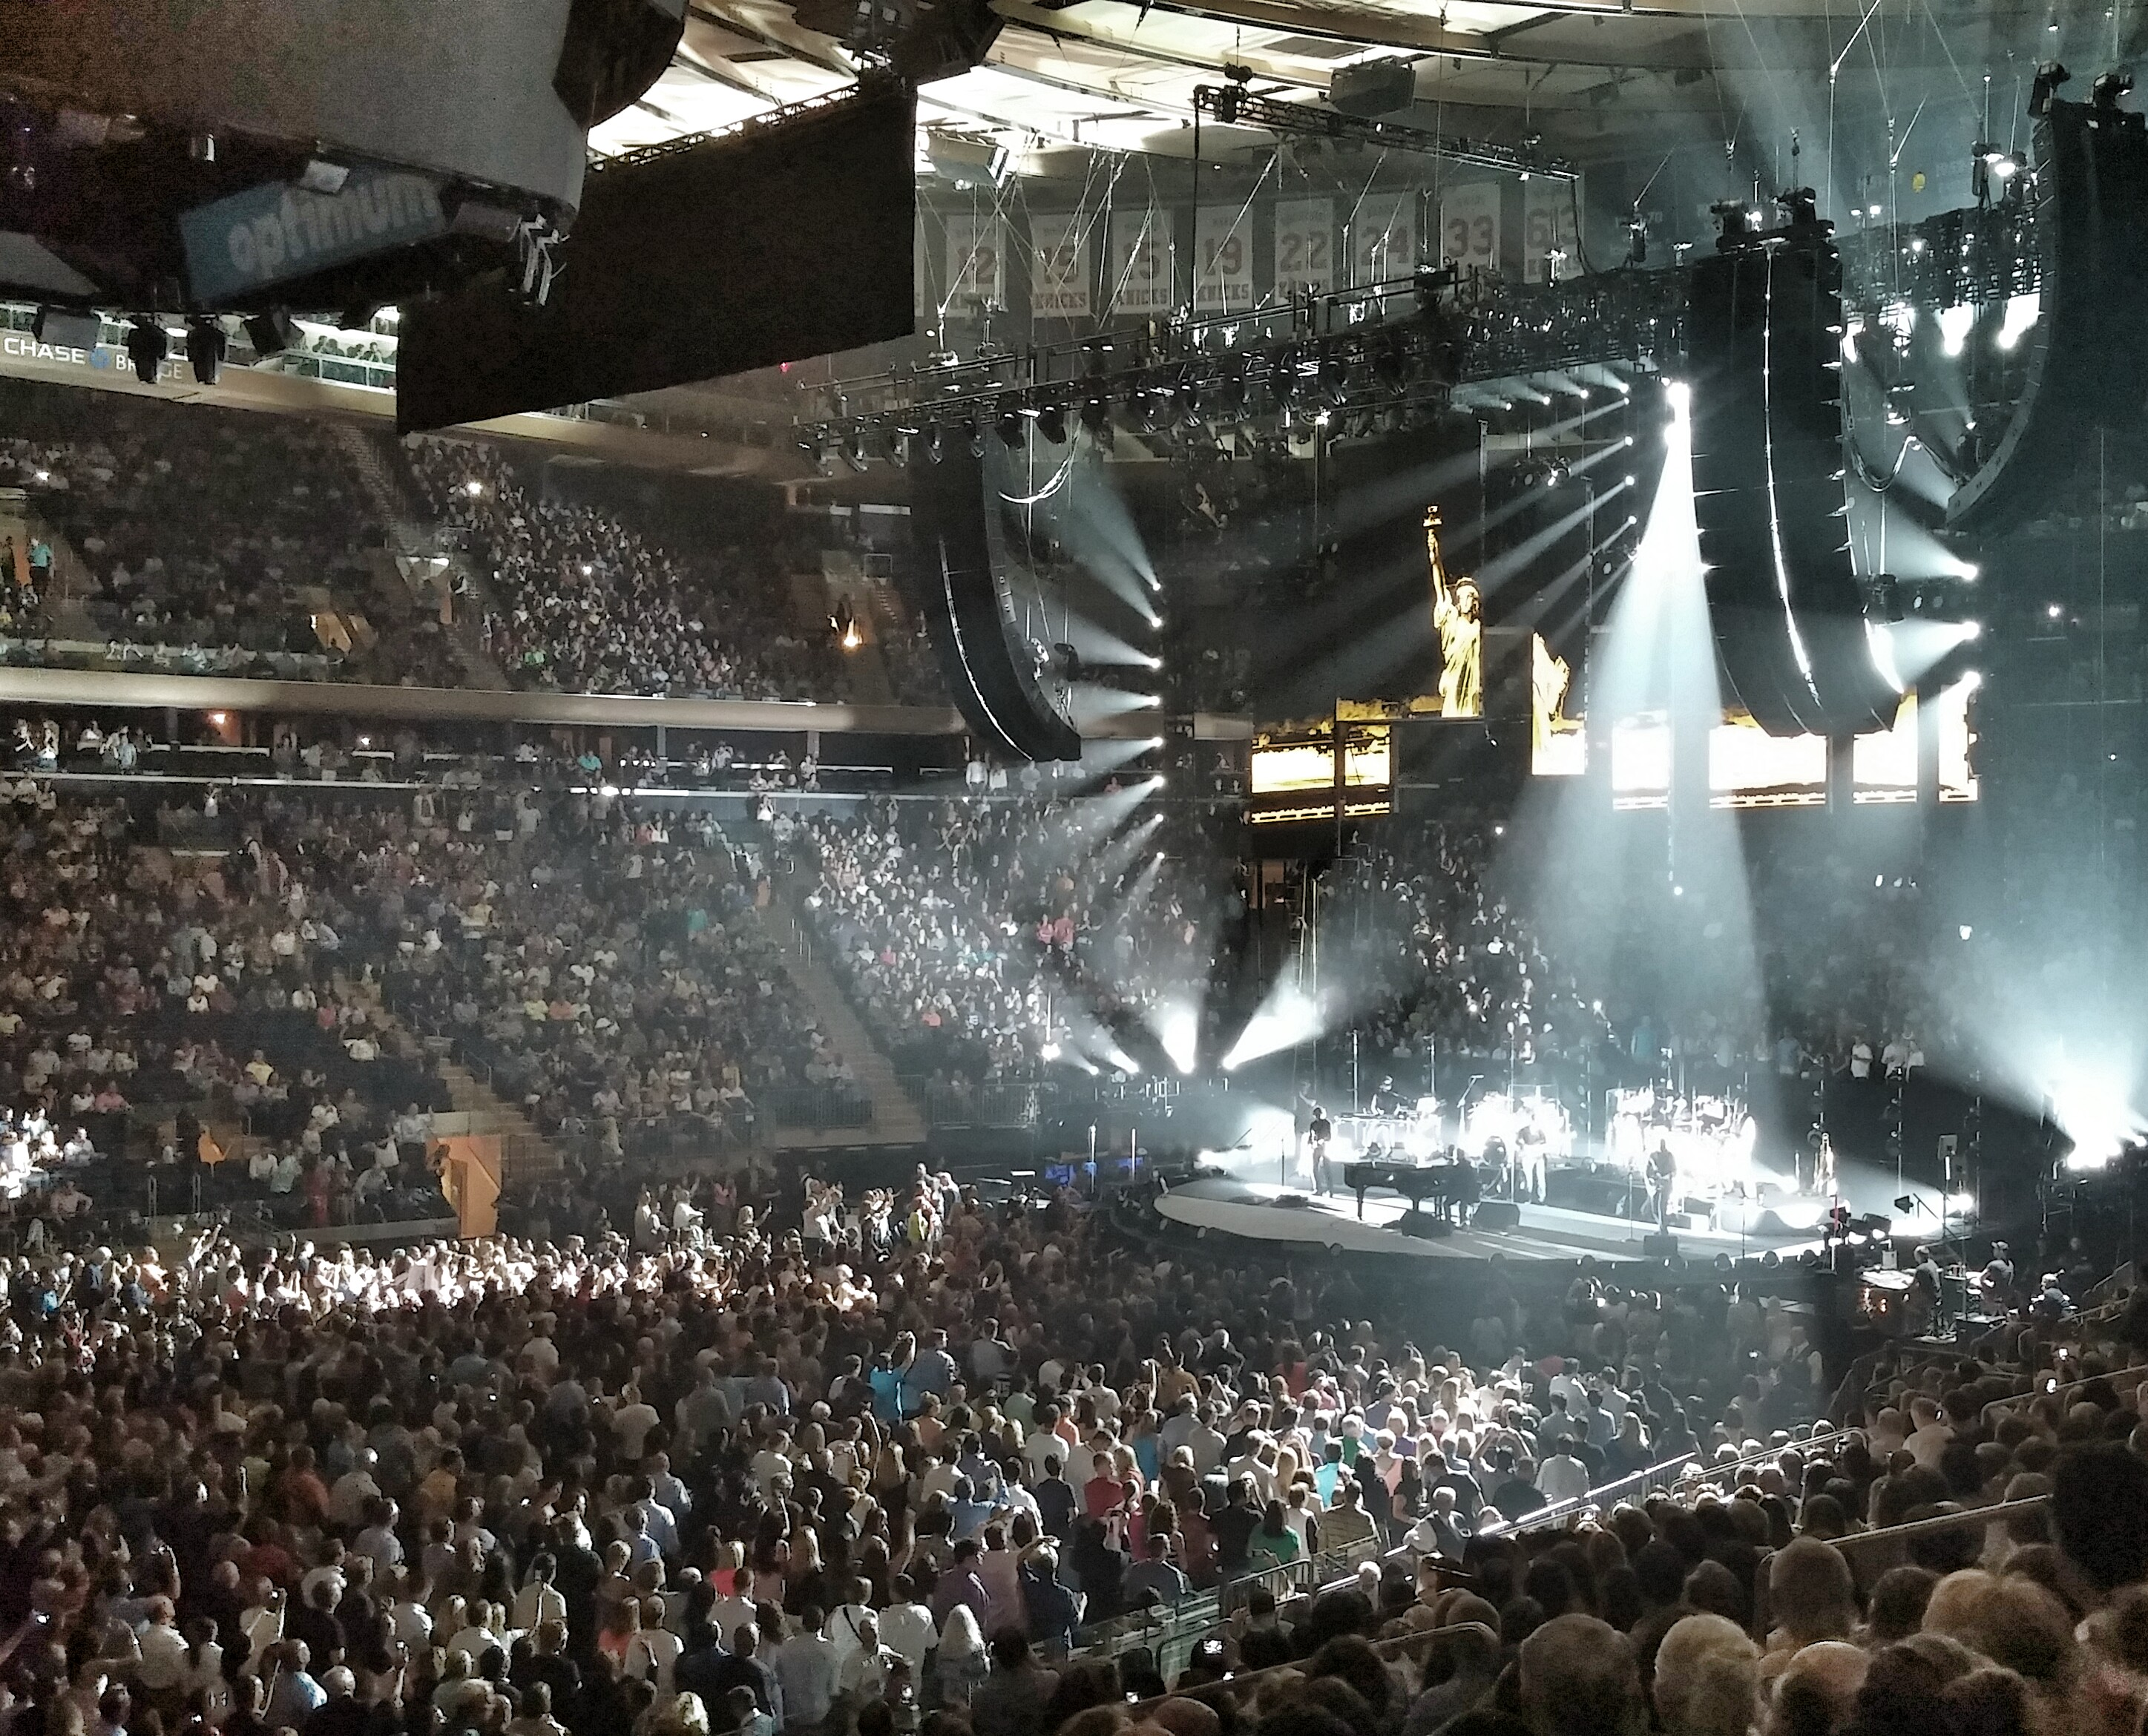 Billy Joel at Madison Square Garden in NYC through the lens of my